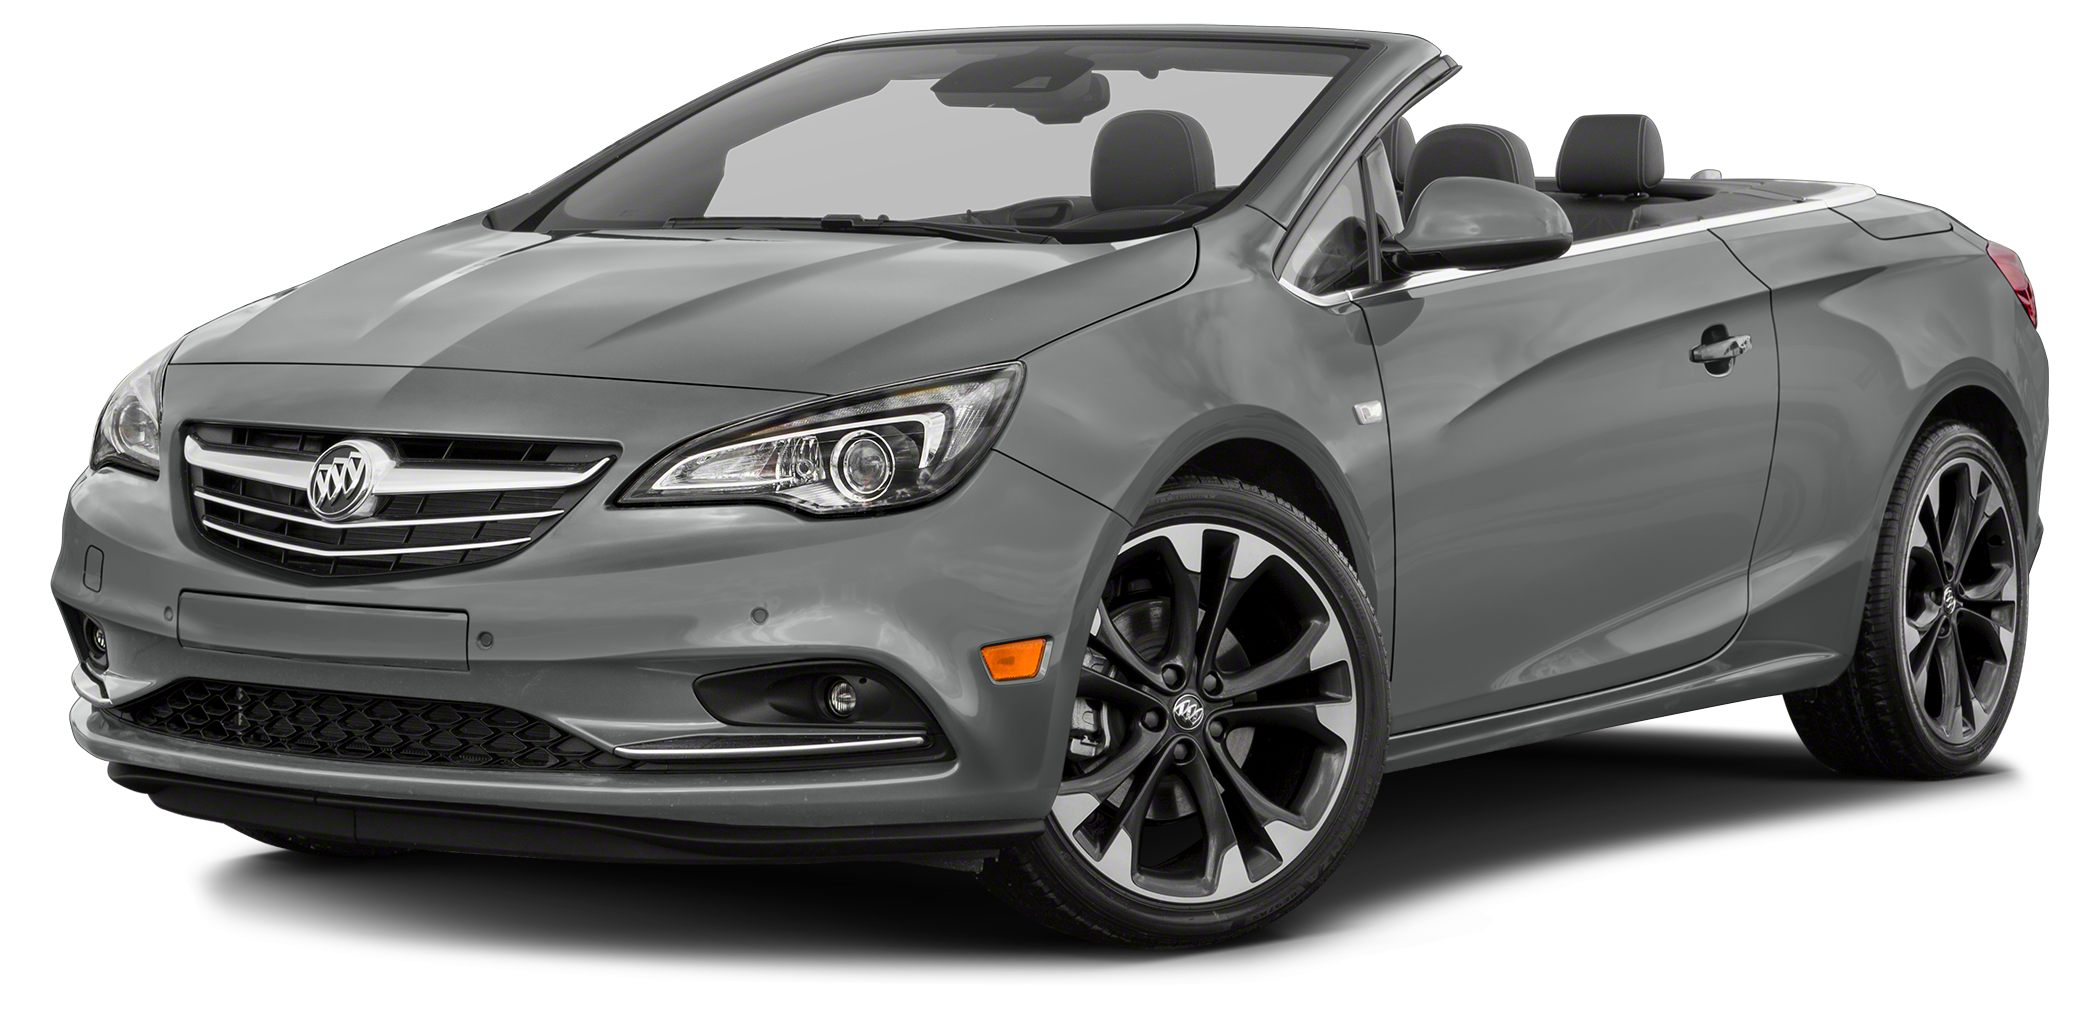 2017 Buick Cascada Premium Thank you for visiting another one of Conley Buick GMCs exclusive list